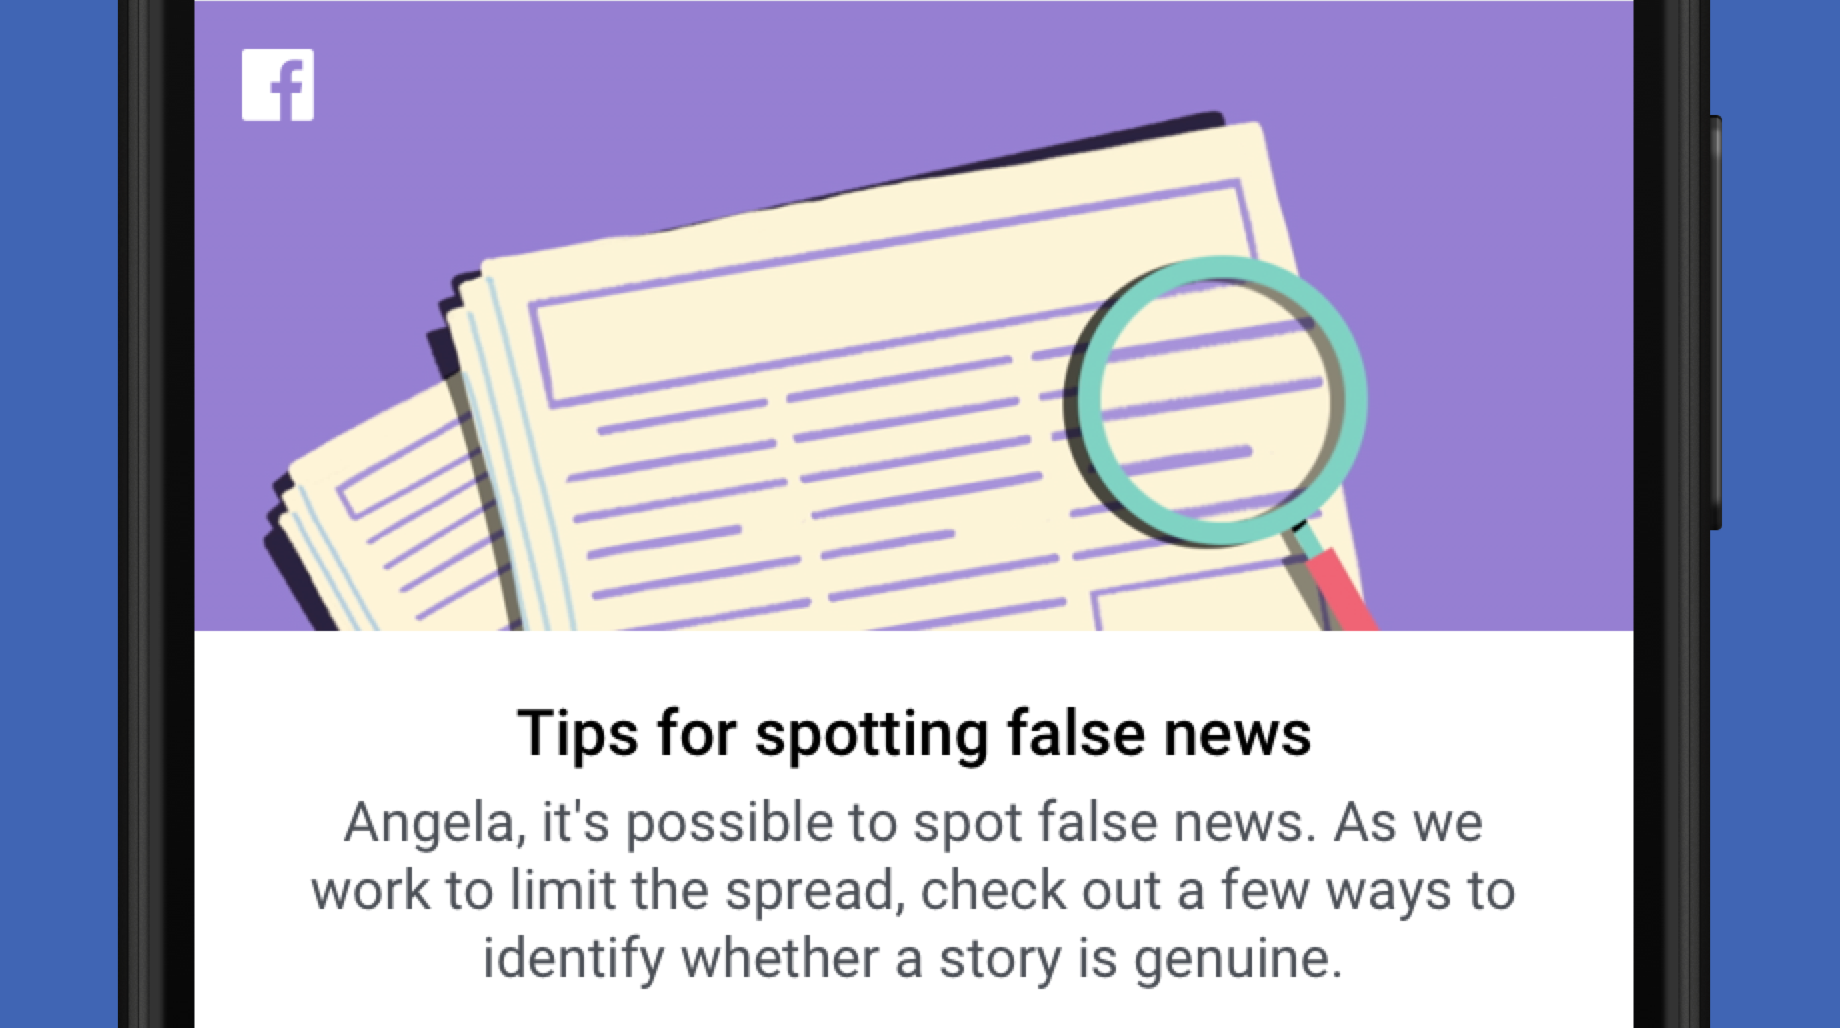 fb tips false news 16x9